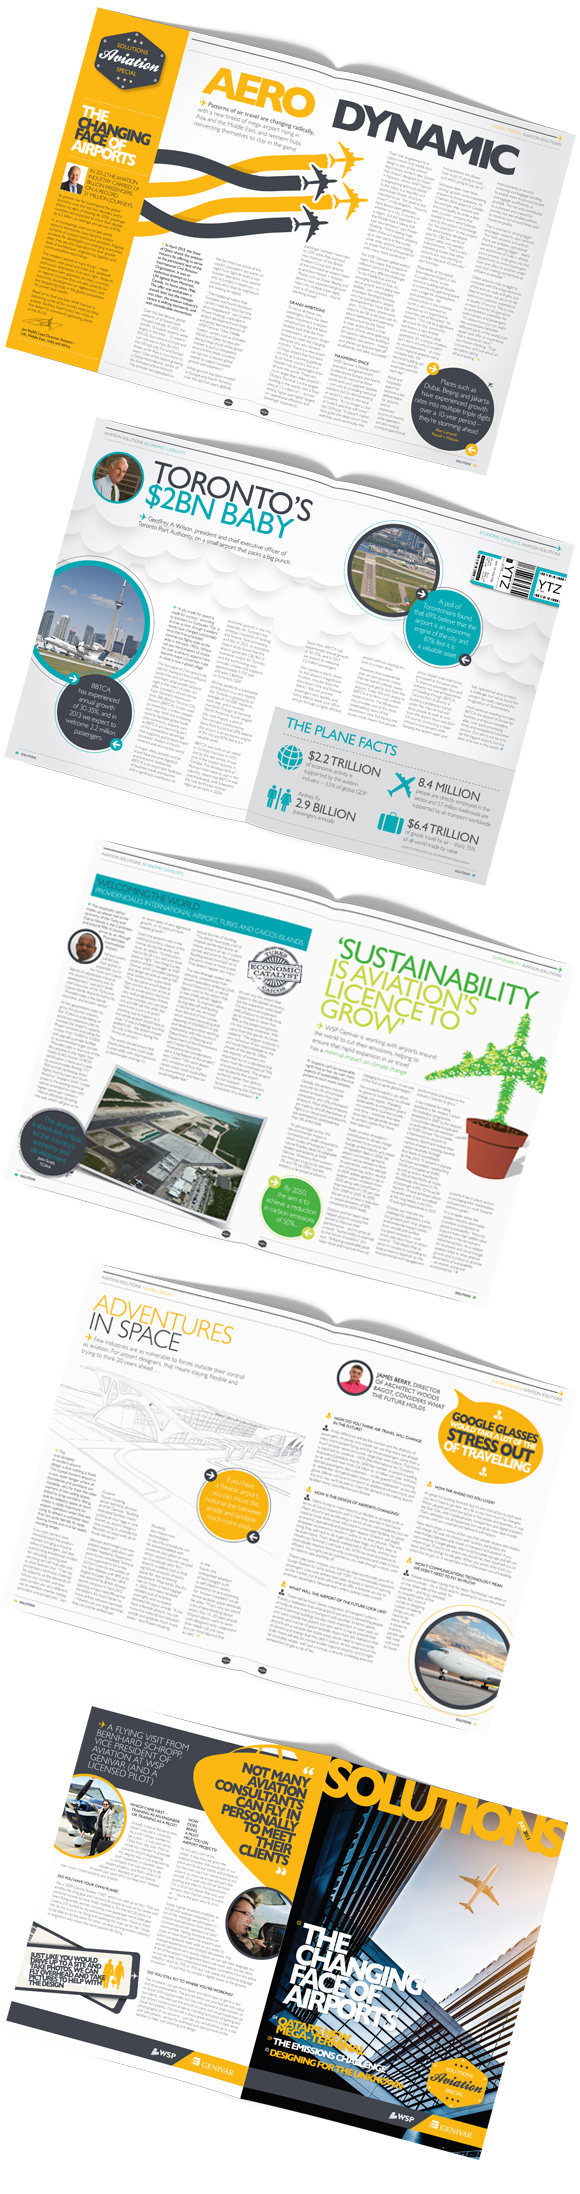 WSP - Solutions Magazine - August edition